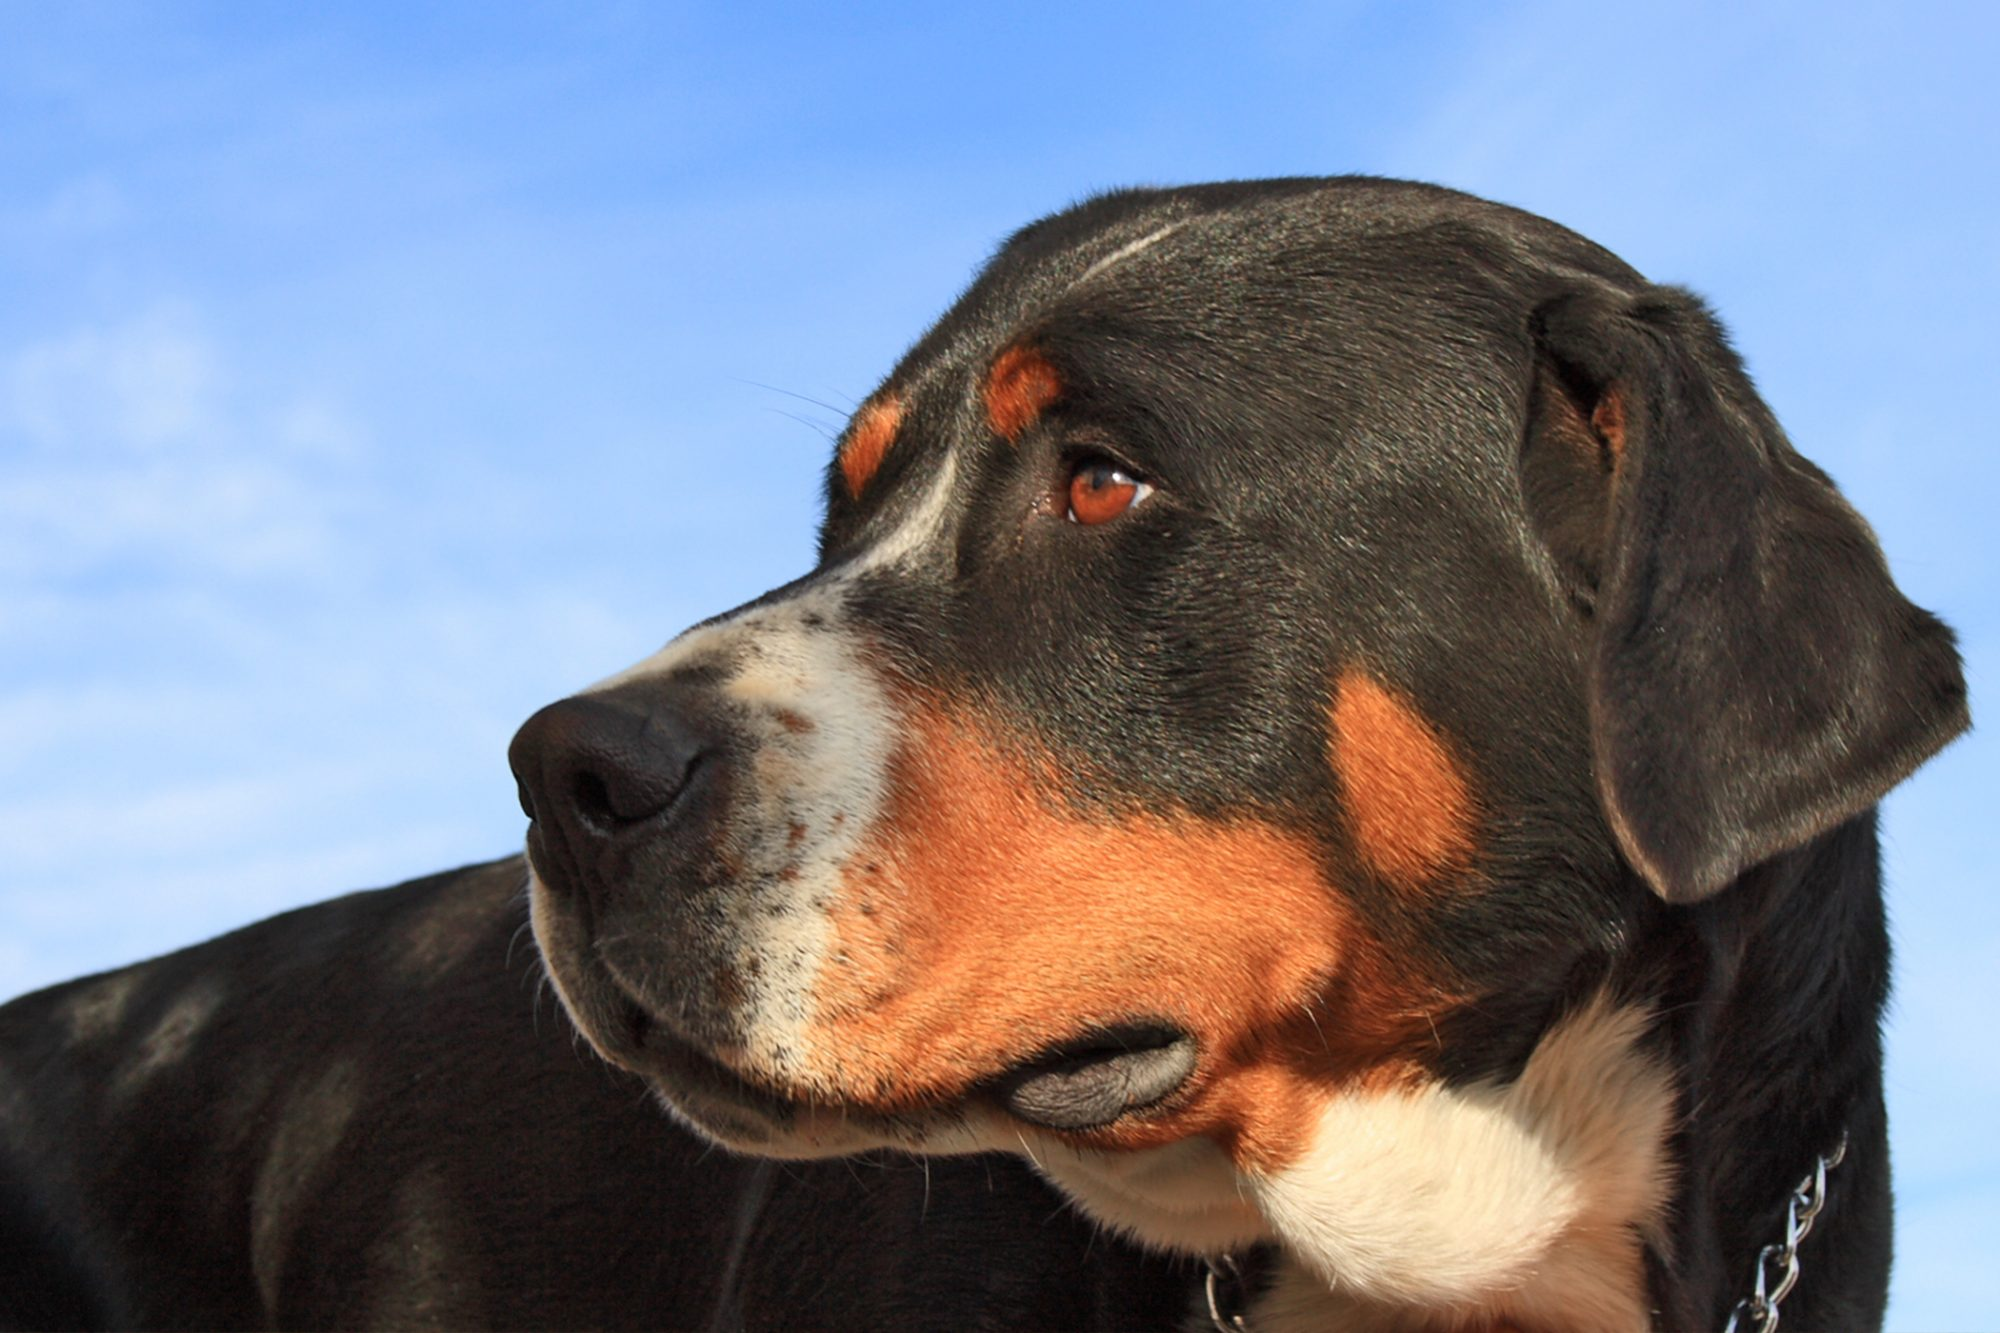 Adult Greater Swiss Mountain Dog portrait against blue sky